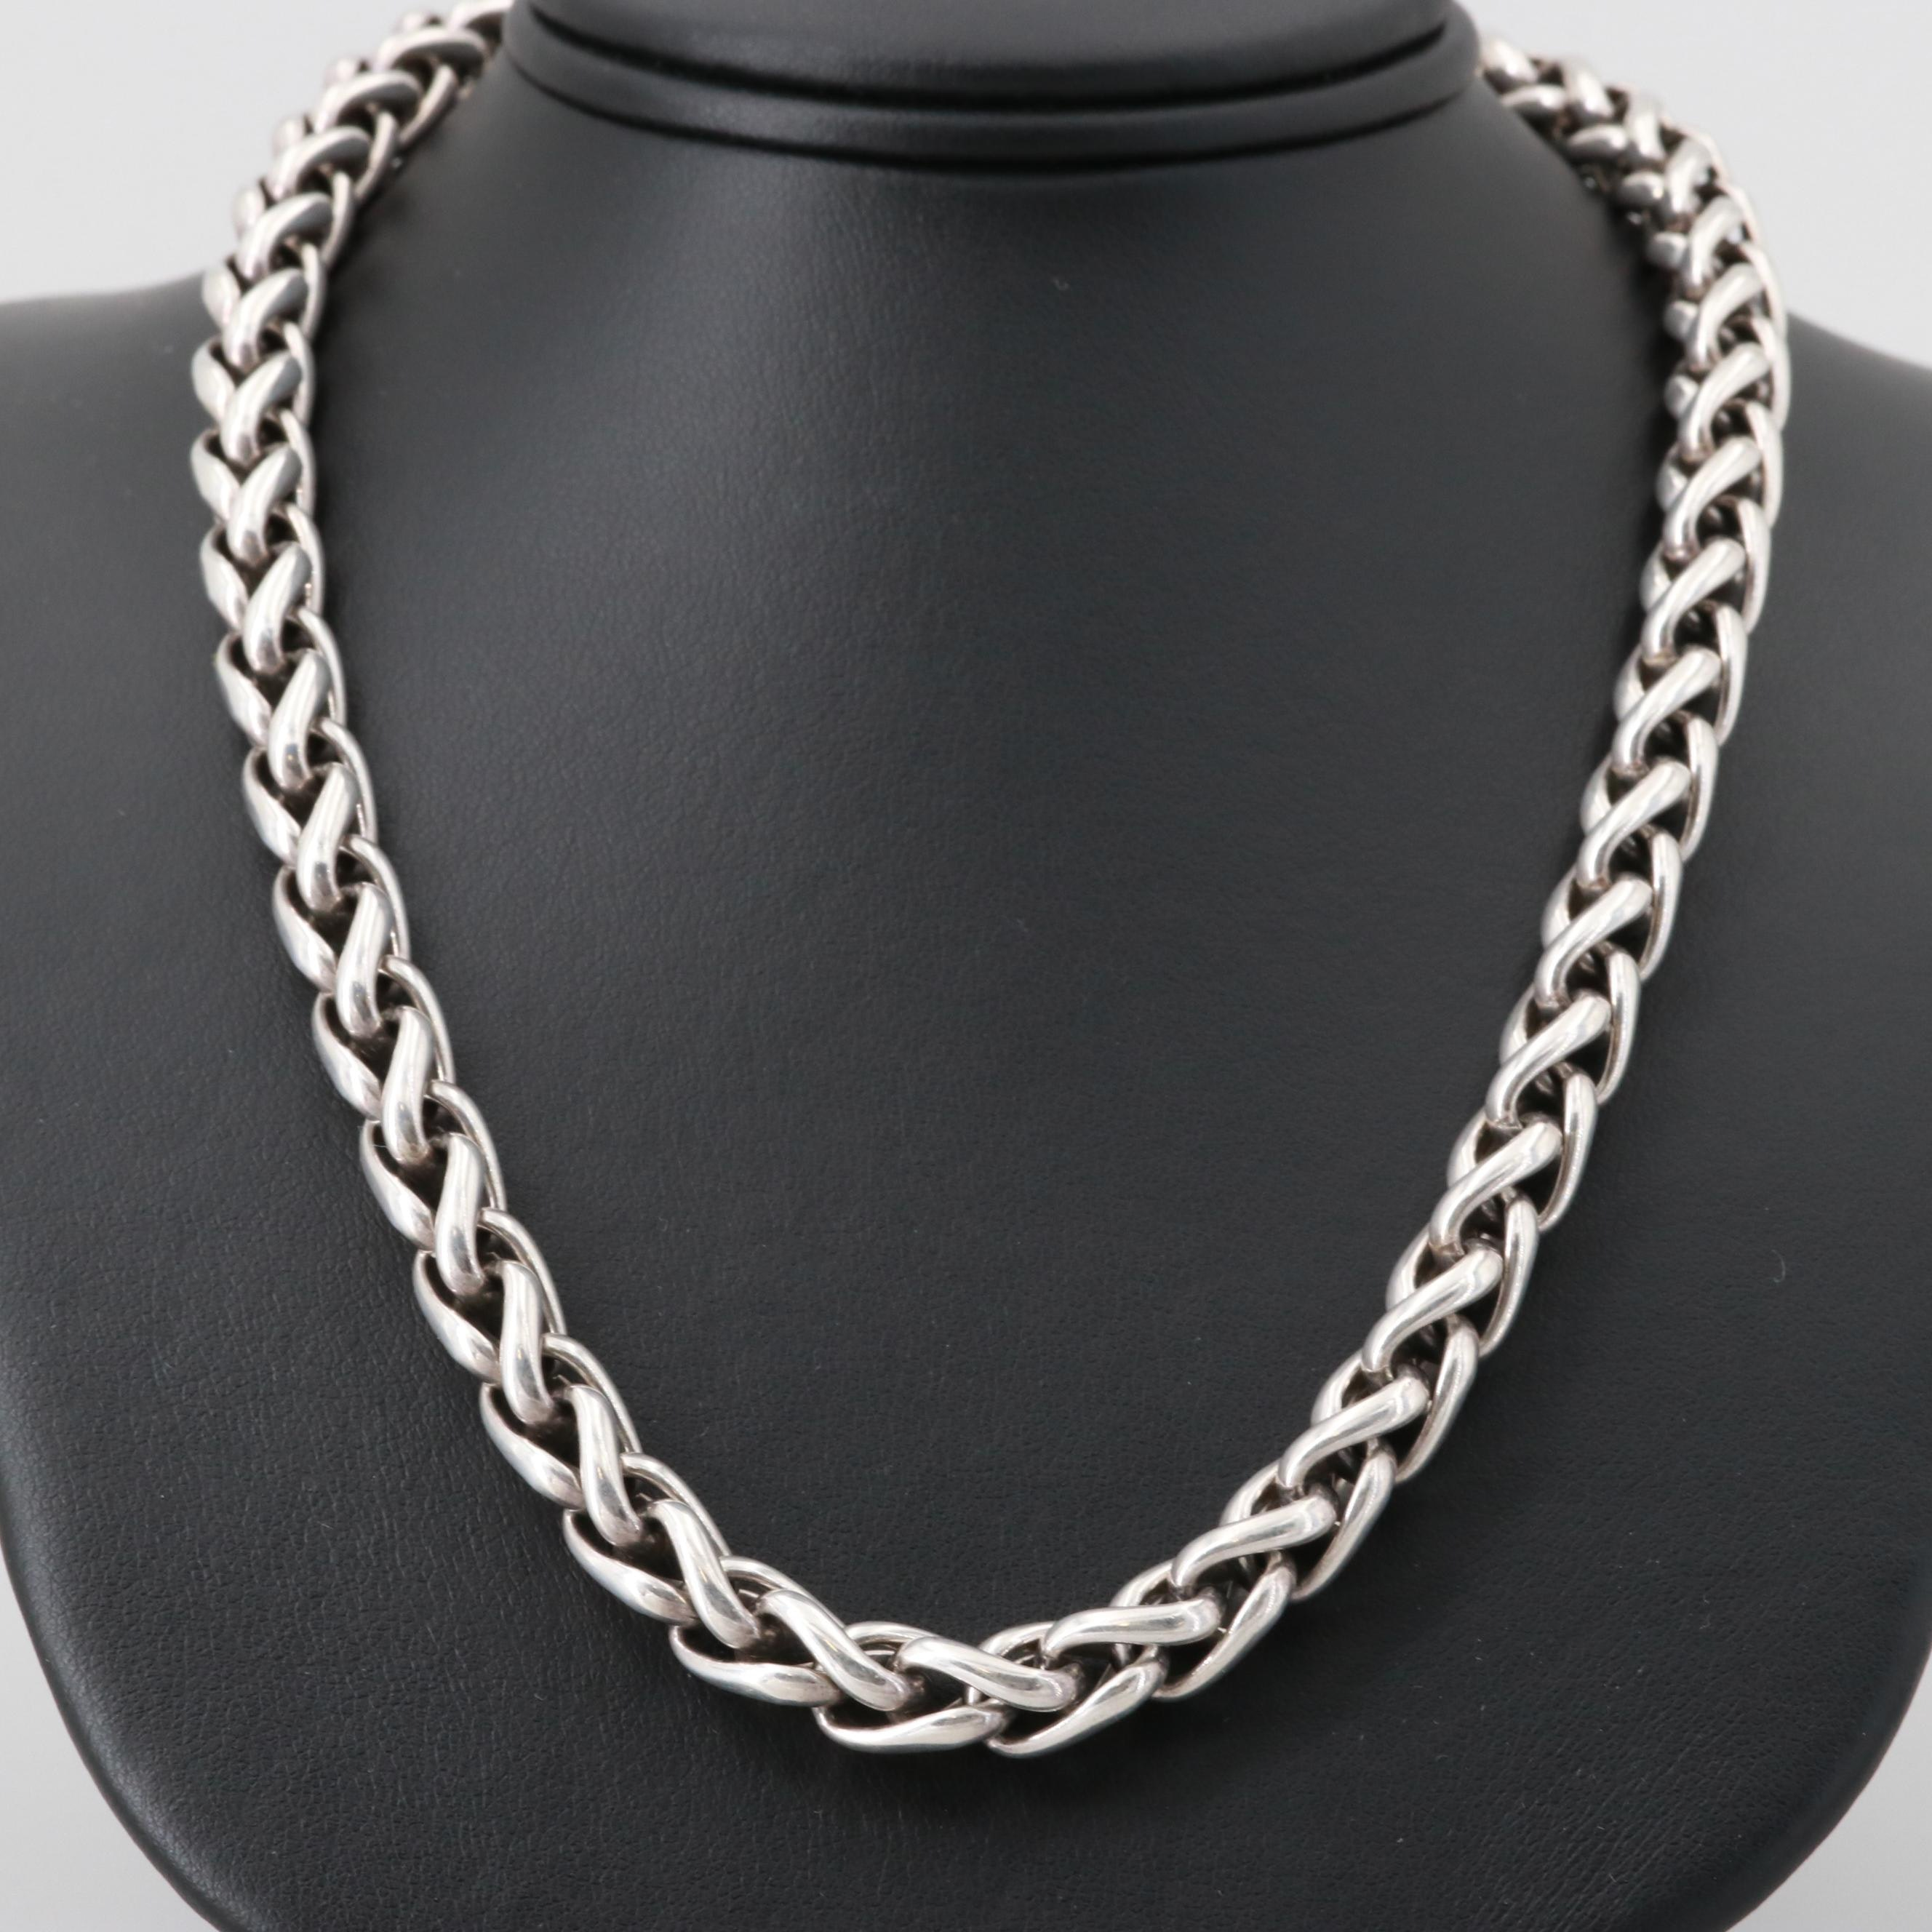 David Yurman Sterling Silver Wheat Chain Necklace with 14K Yellow Gold